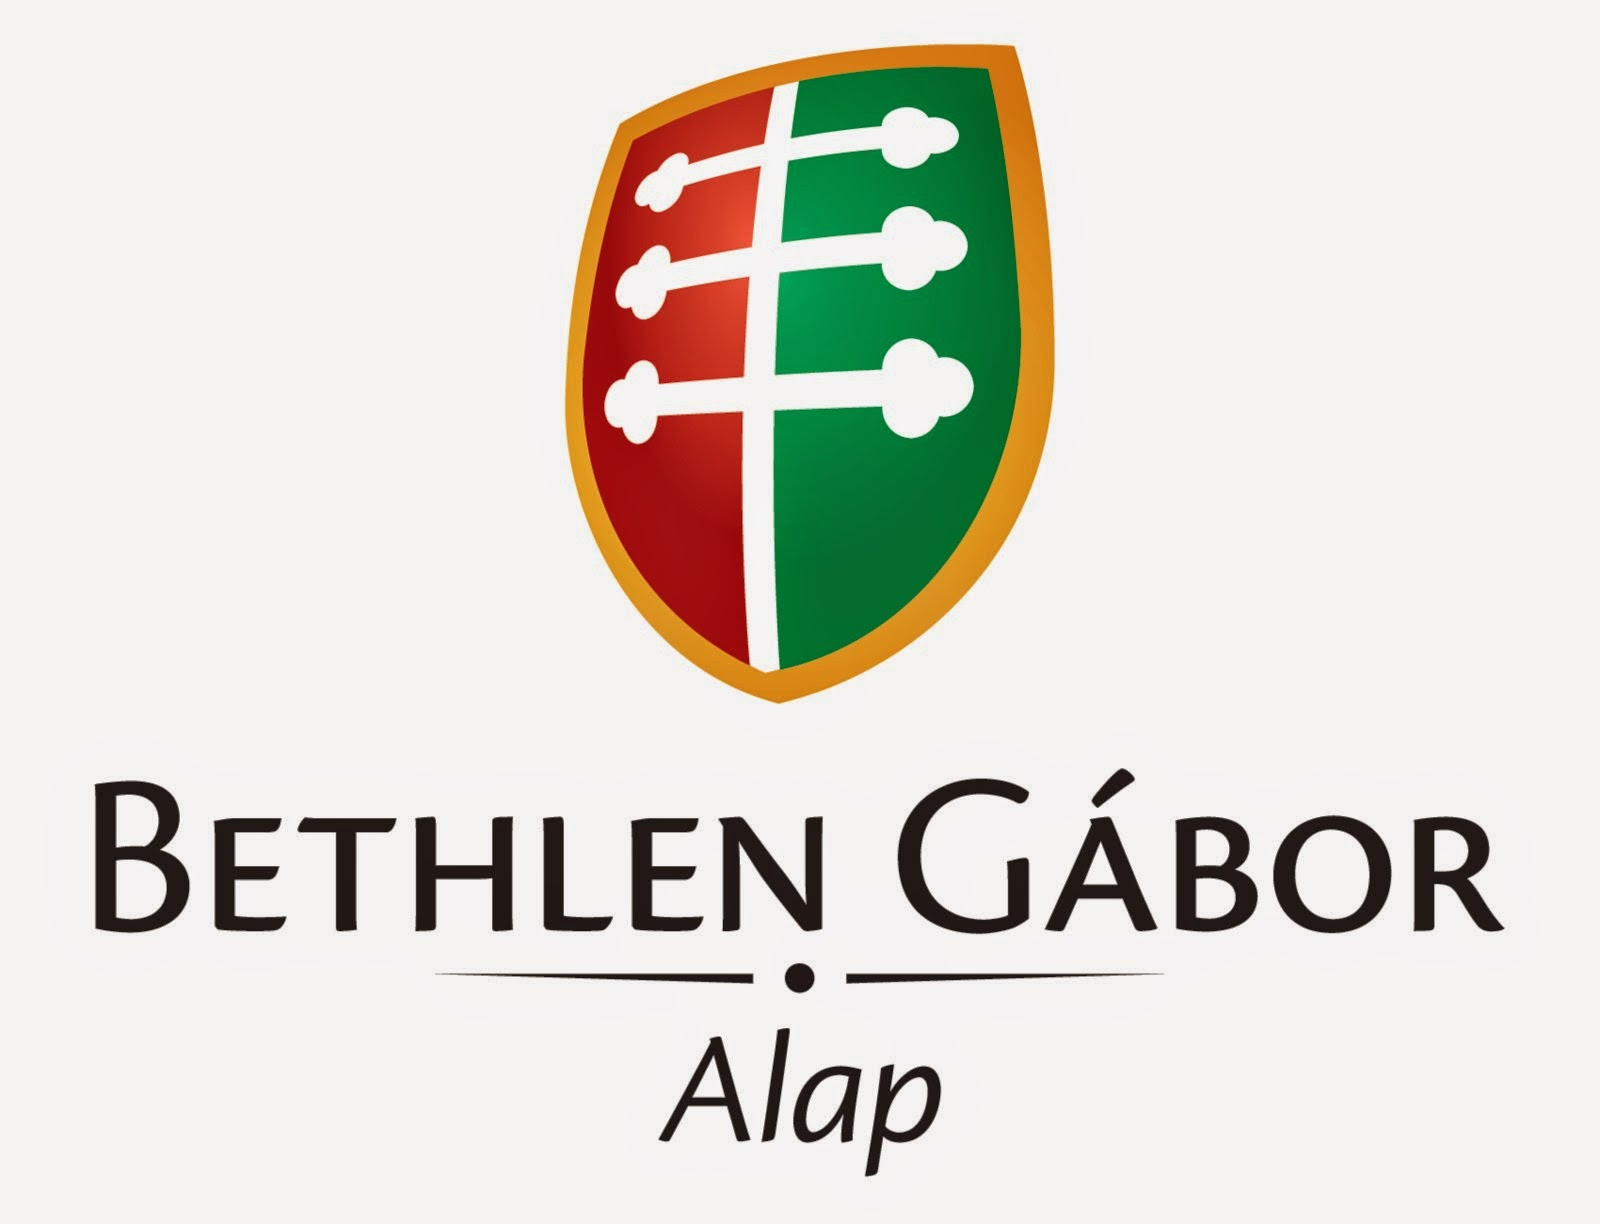 Bethlen Gábor Alap